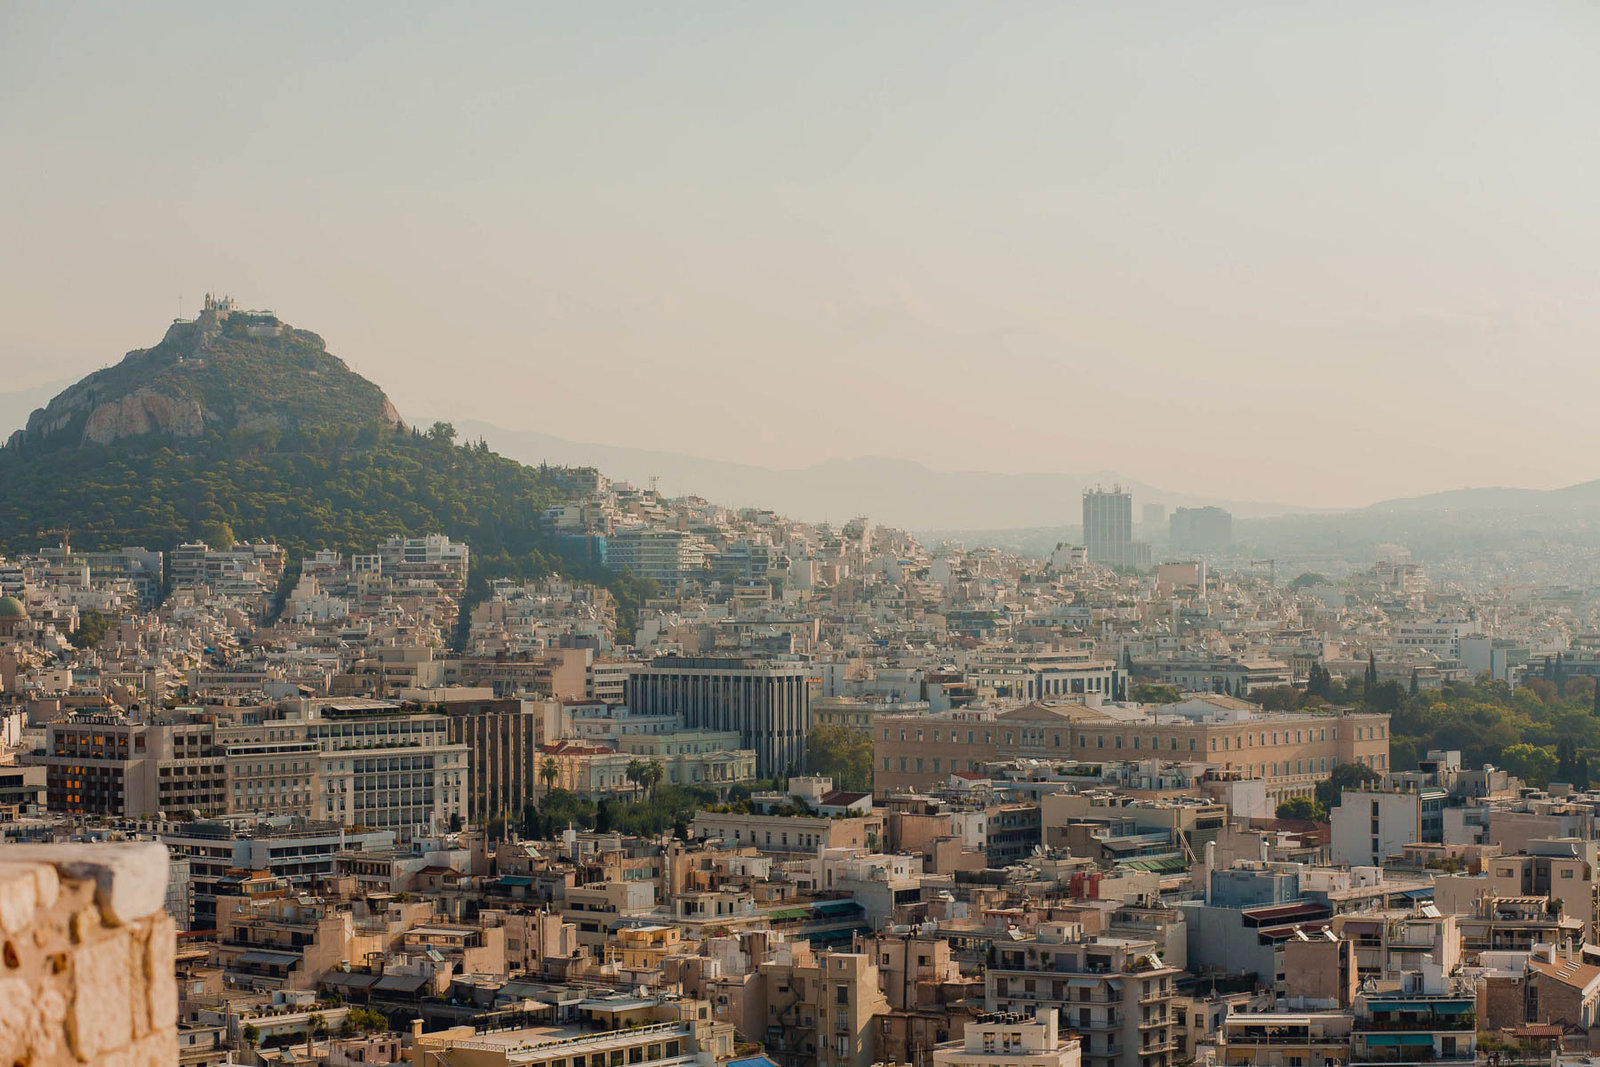 View of Mount Lycabettus from the Acropolis in Athens, Greece